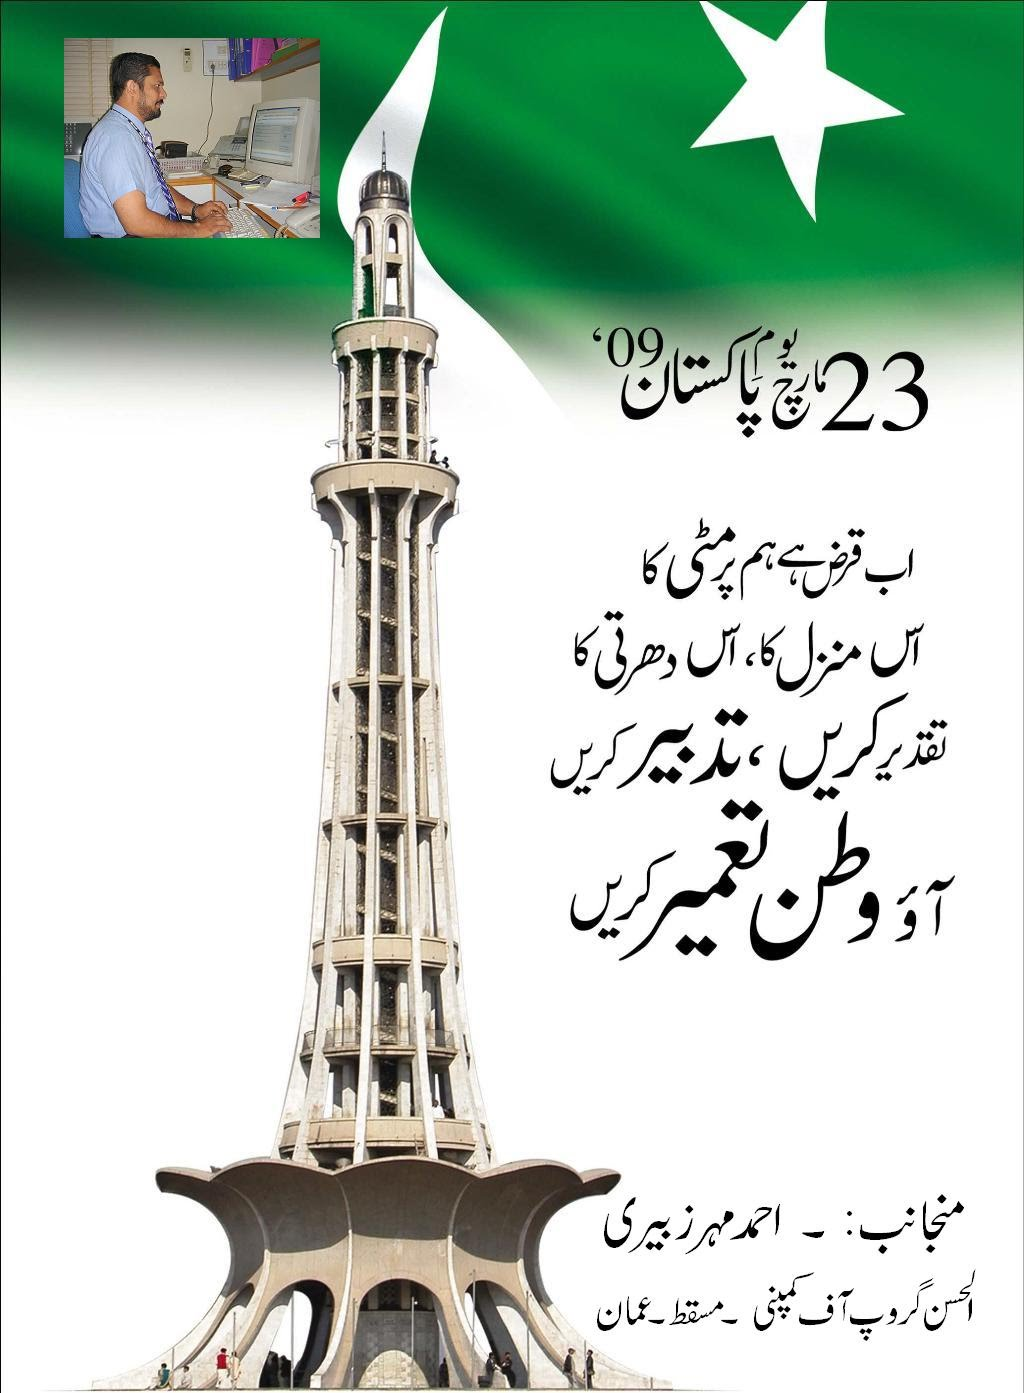 essay of independence day of pakistan India was ruled by the british from the year 1858 queen victoria was declared as the empress of india this rule continued until 15th august 1947 on 15th august the british left india and india got its freedom, since then 15th august is celebrated as the independence day of india.